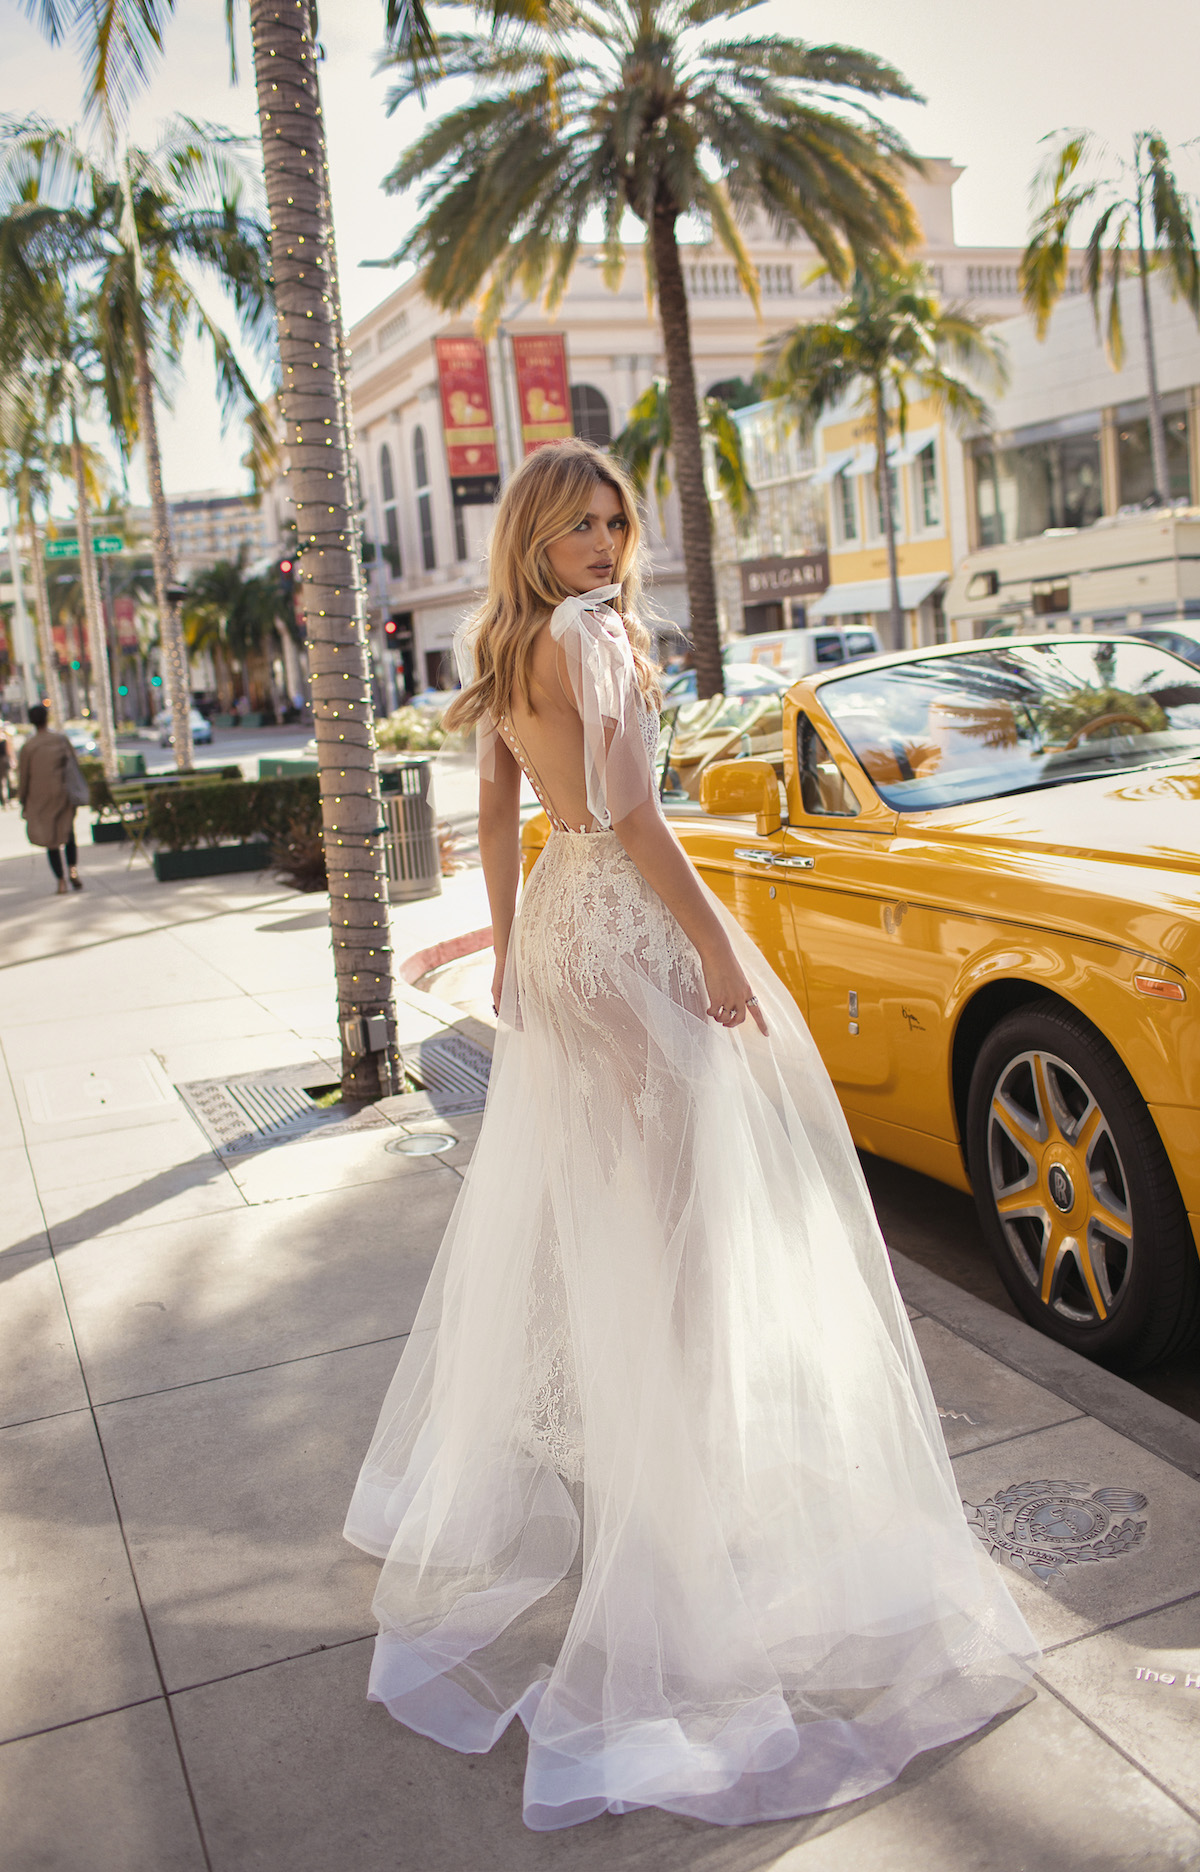 Sheer Perfection BERTAs 2019 City of Angels Wedding Dress Collection